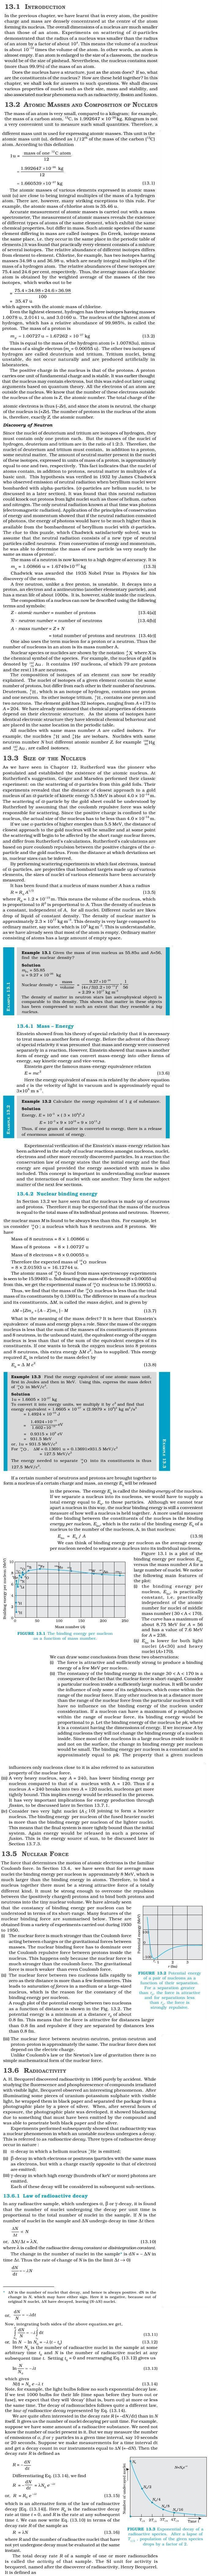 NCERT Class XII Physics Chapter 13 - Nuclei